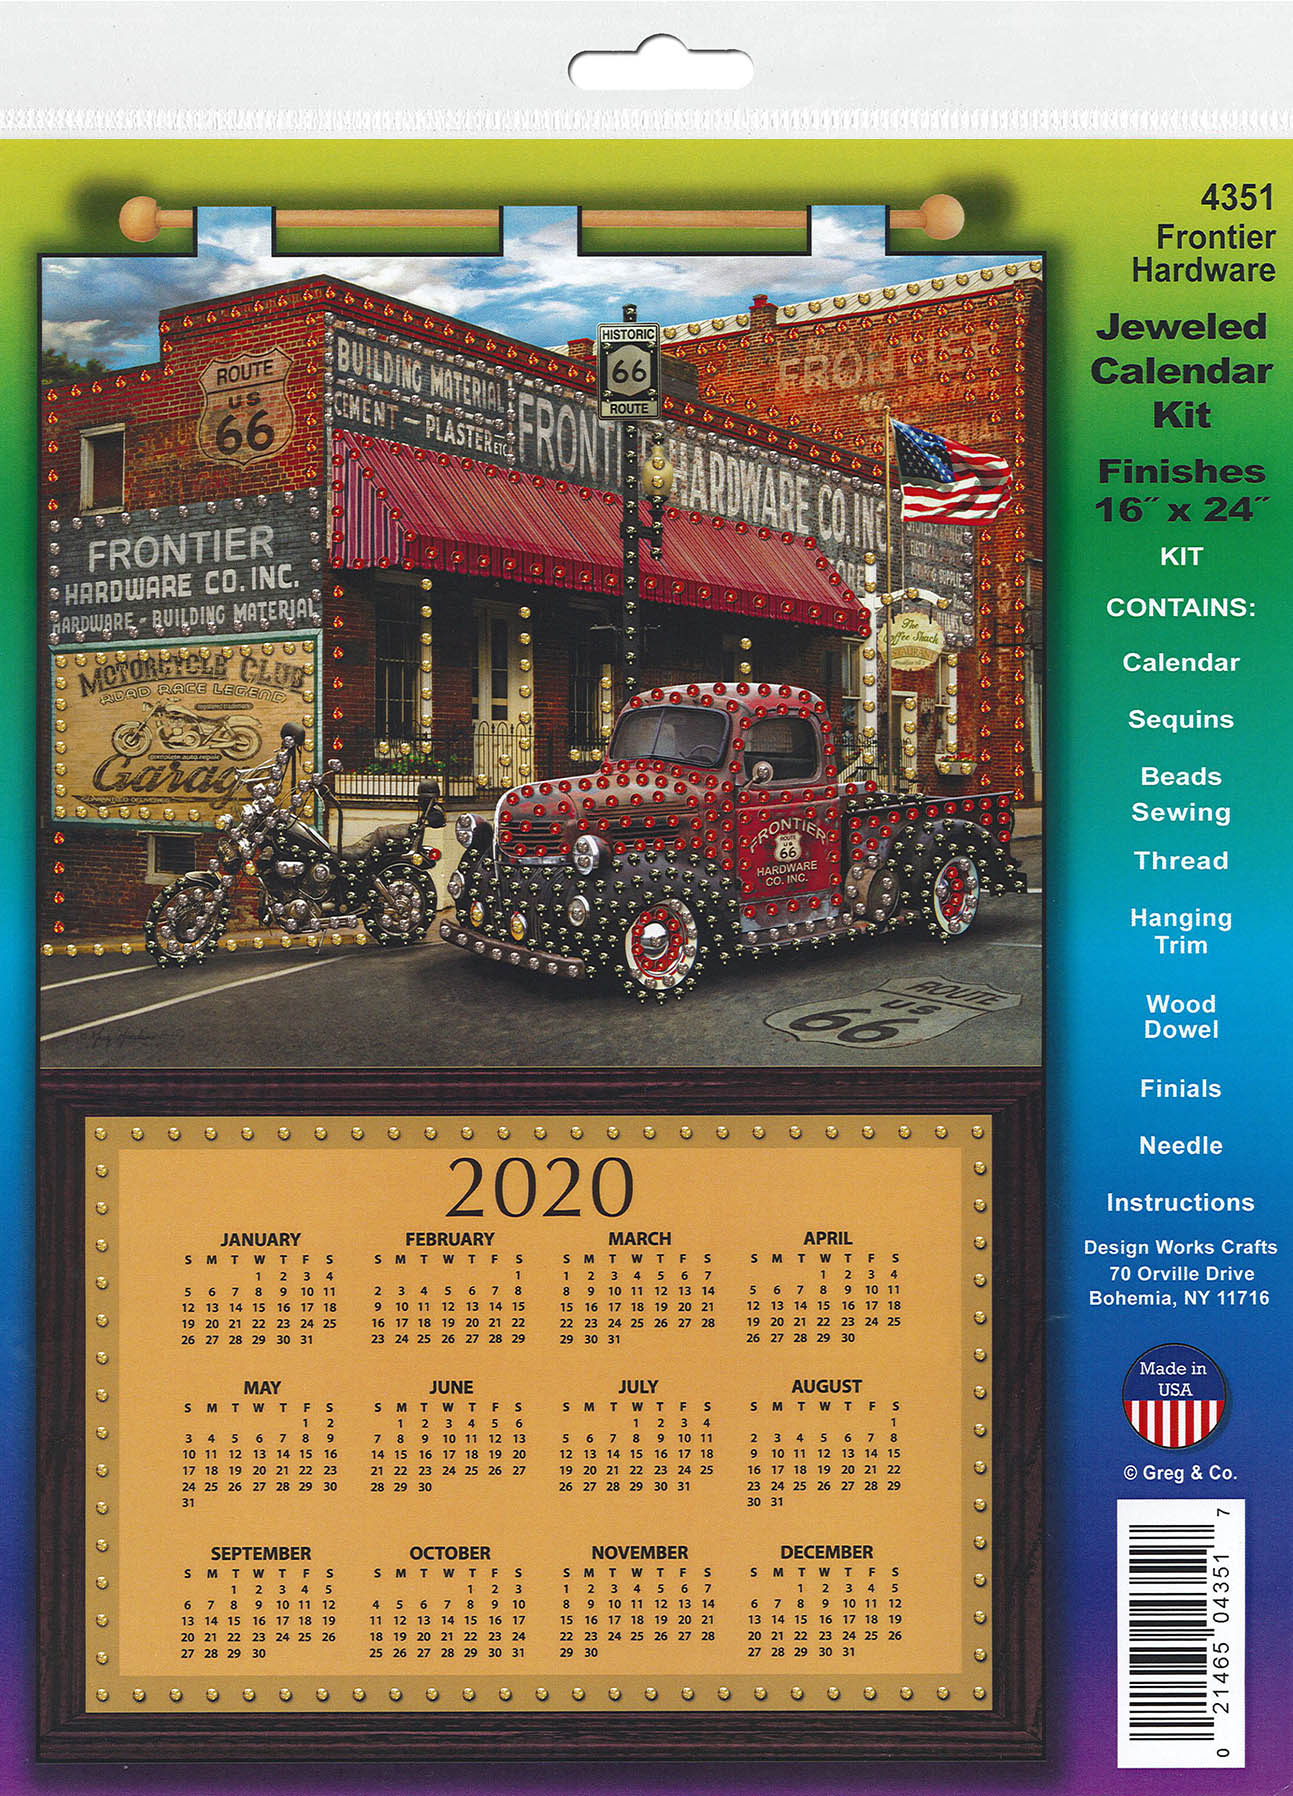 Design Works Kit Jeweled Calendar 2020 Frontier Hardware